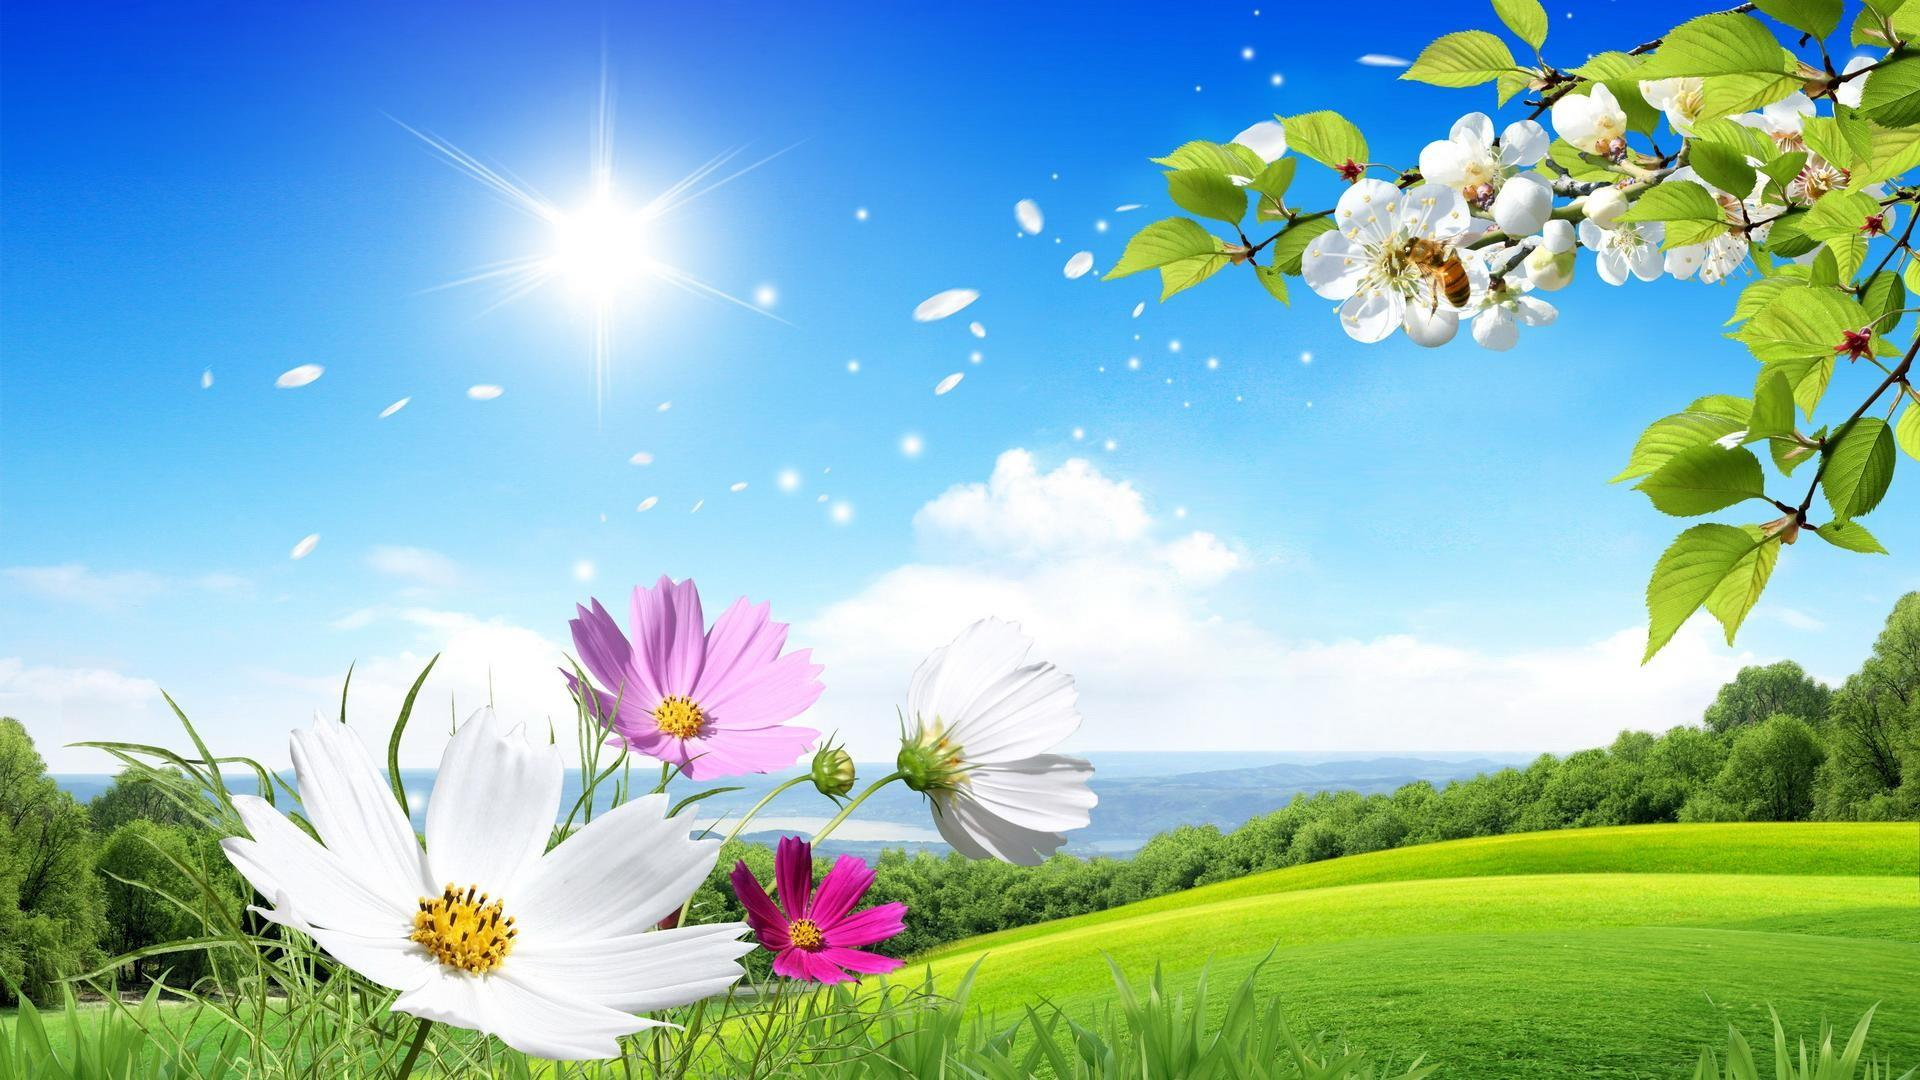 Spring in the meadow    wallpaper